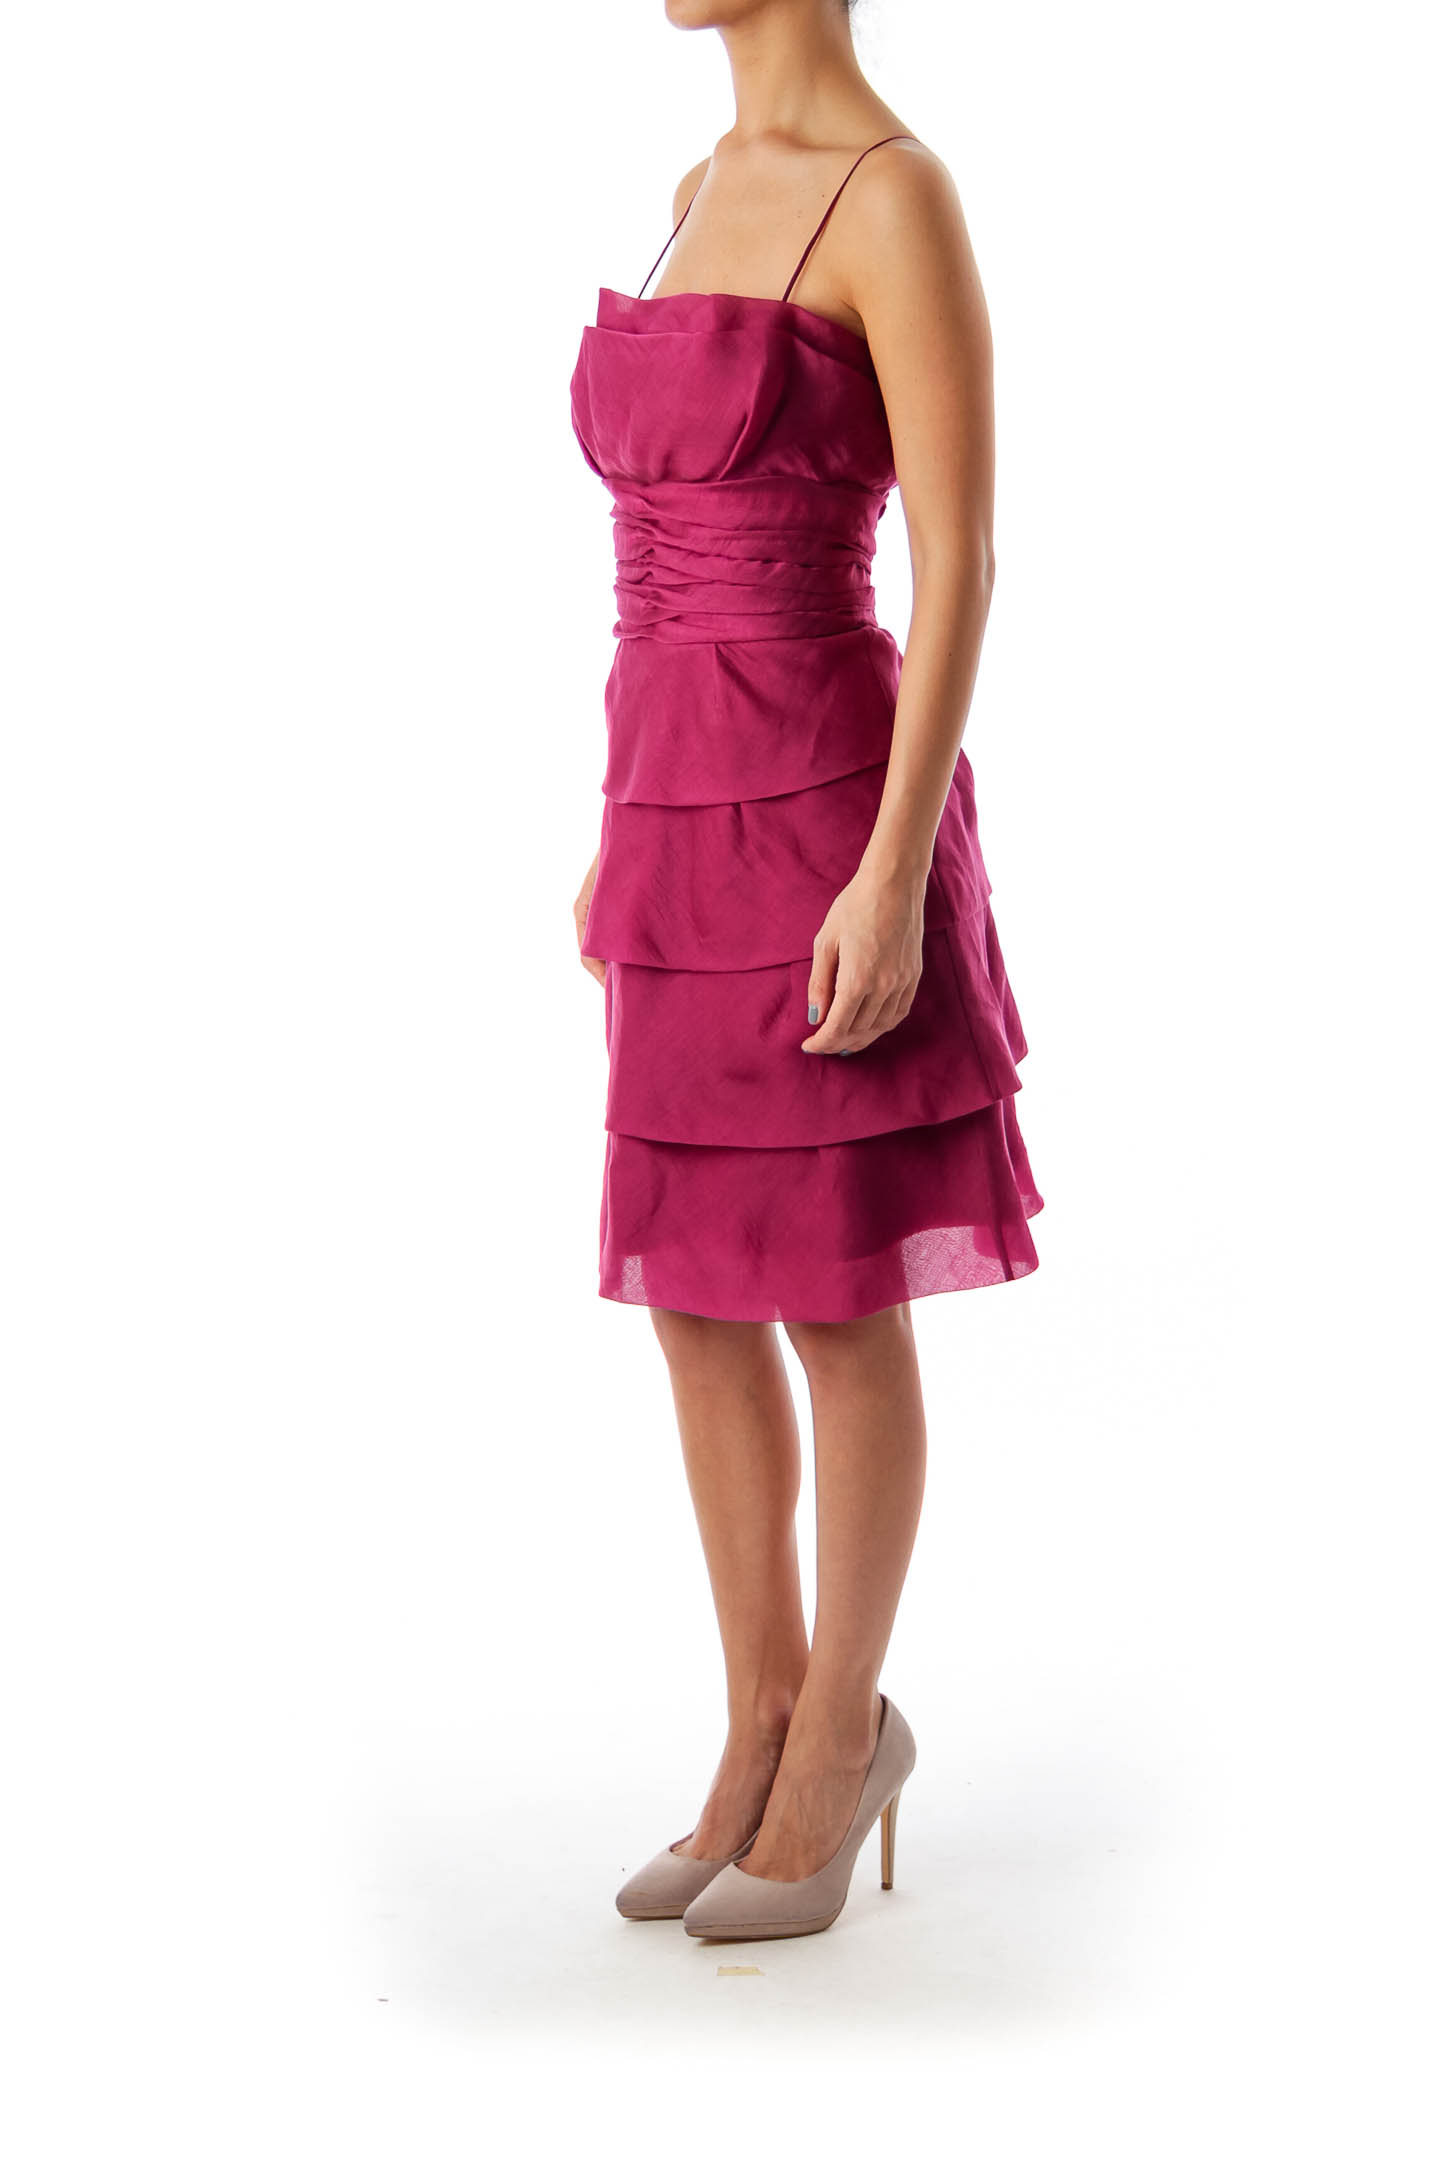 Purple Spaghetti Strap Ruffle Dress